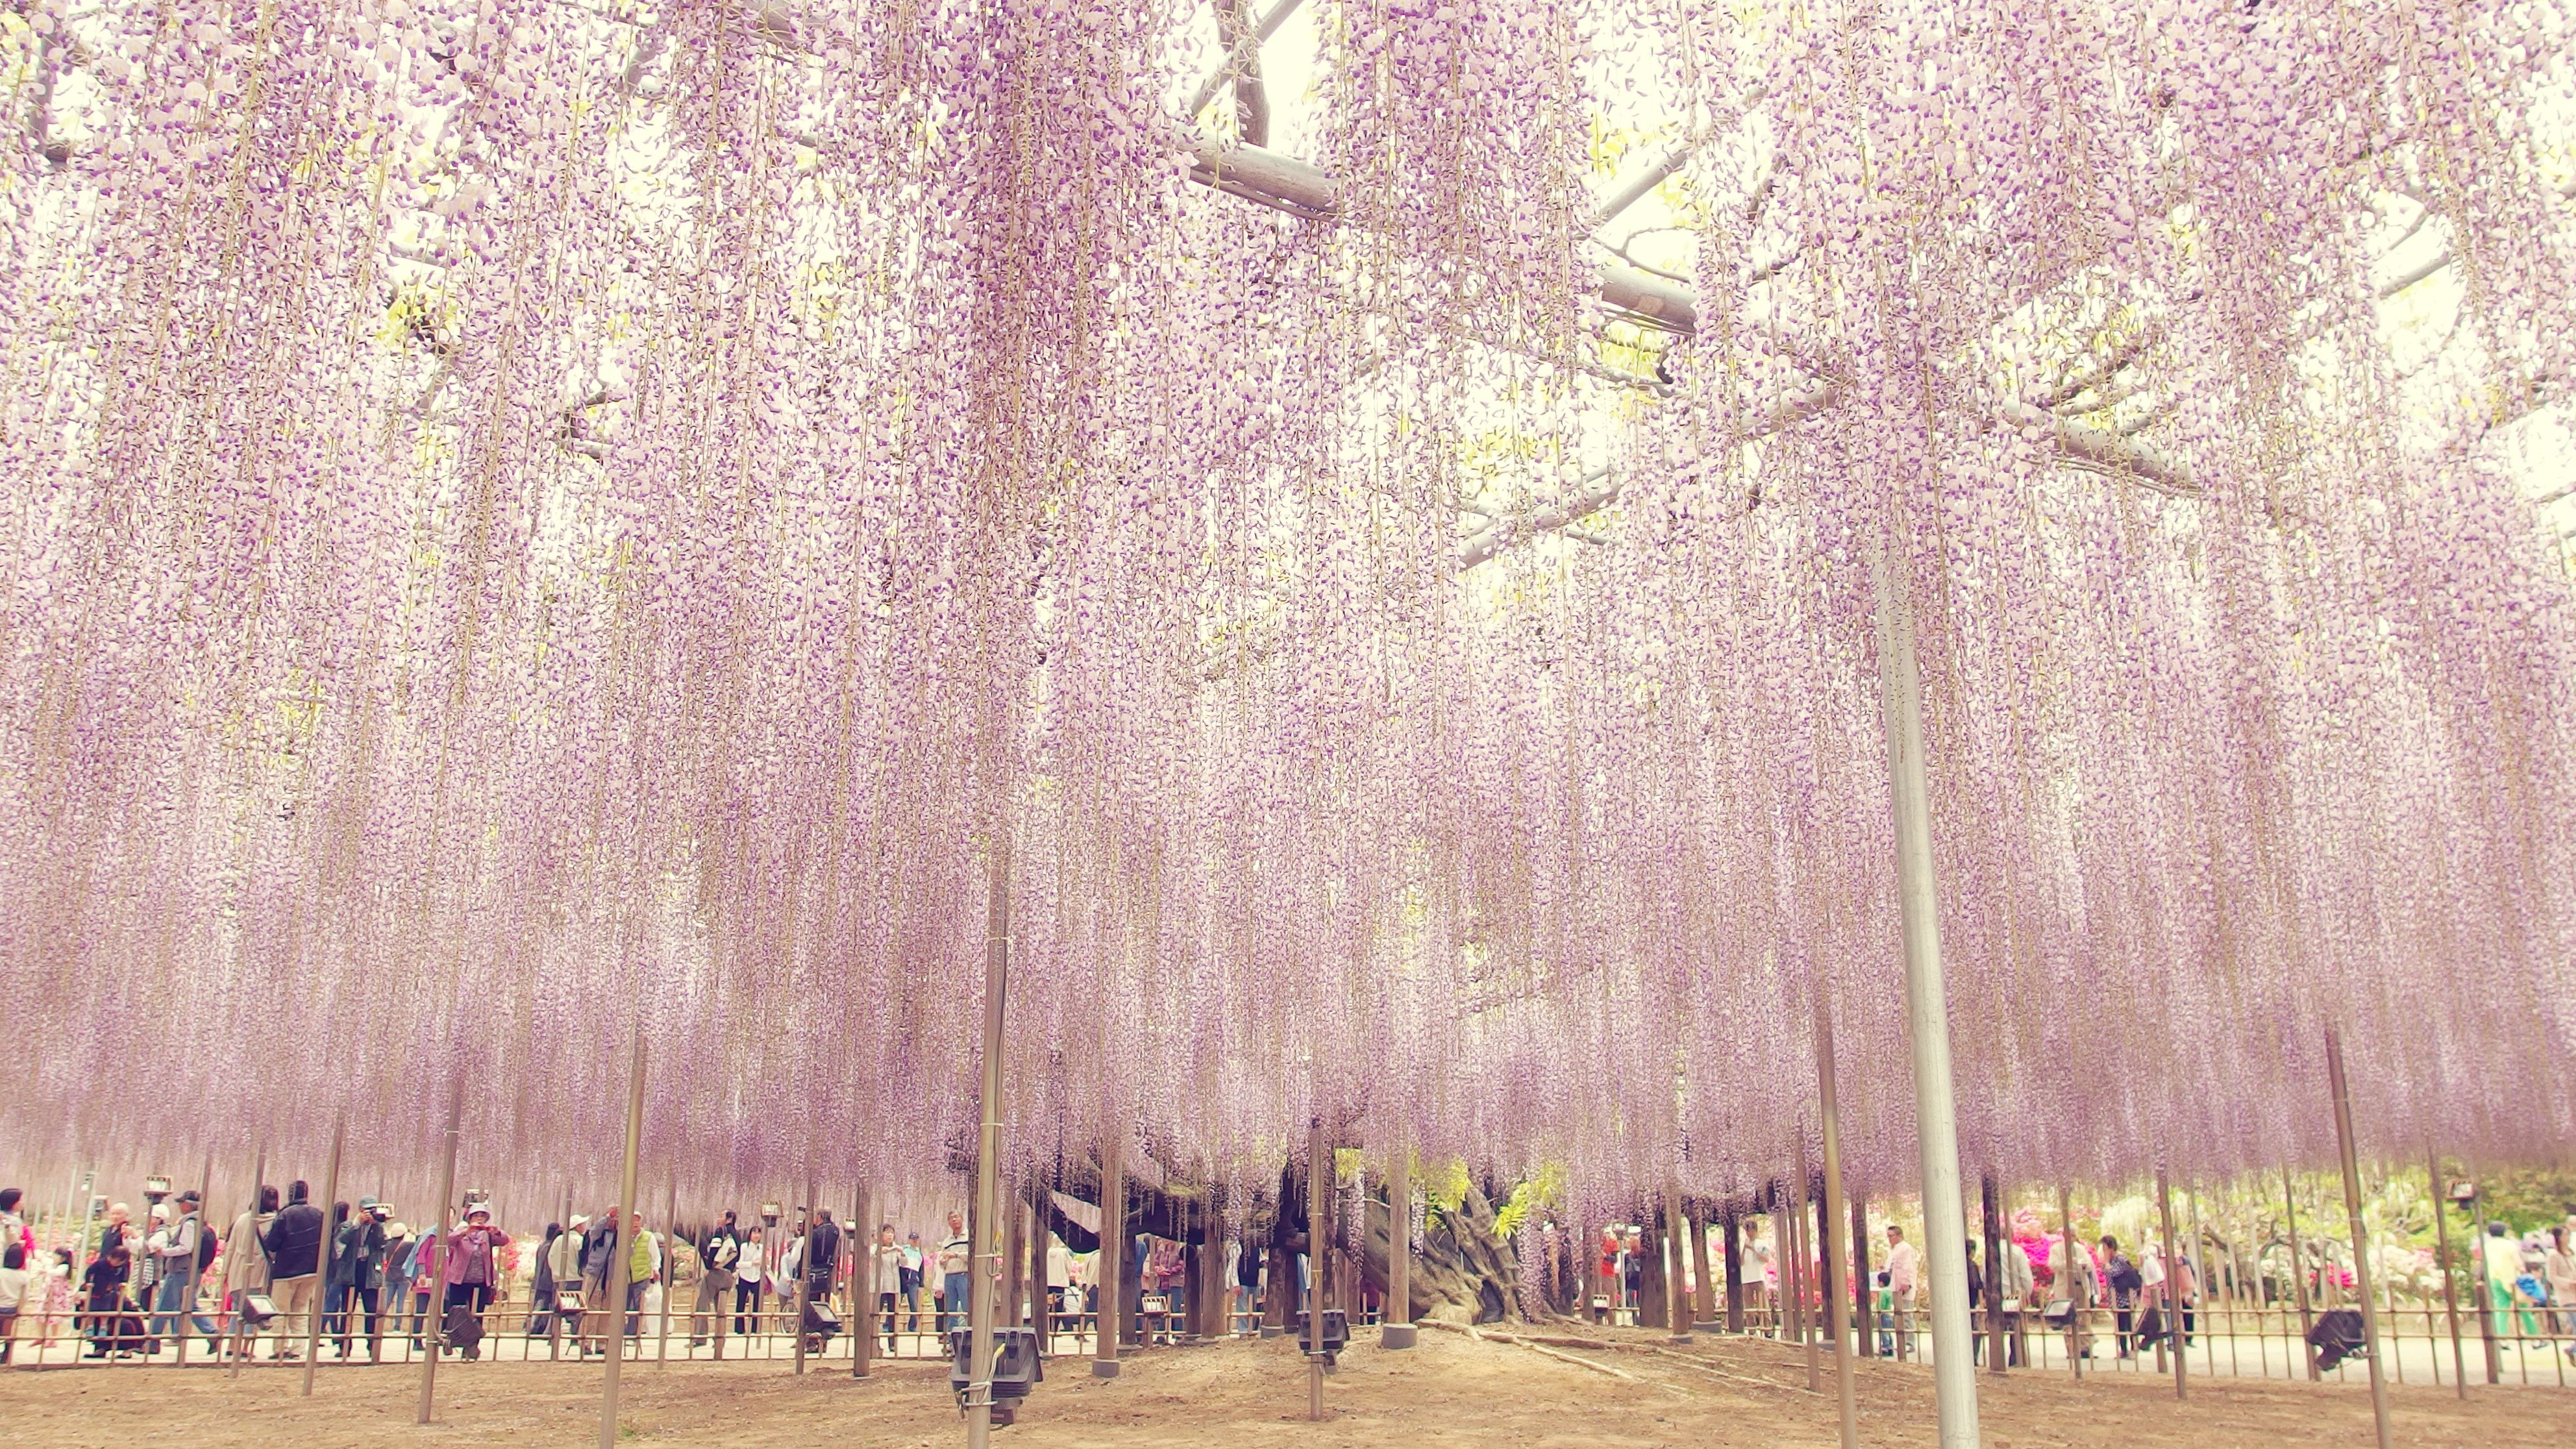 photo credit: at wisteria trellis. 藤棚にて. via photopin (license)